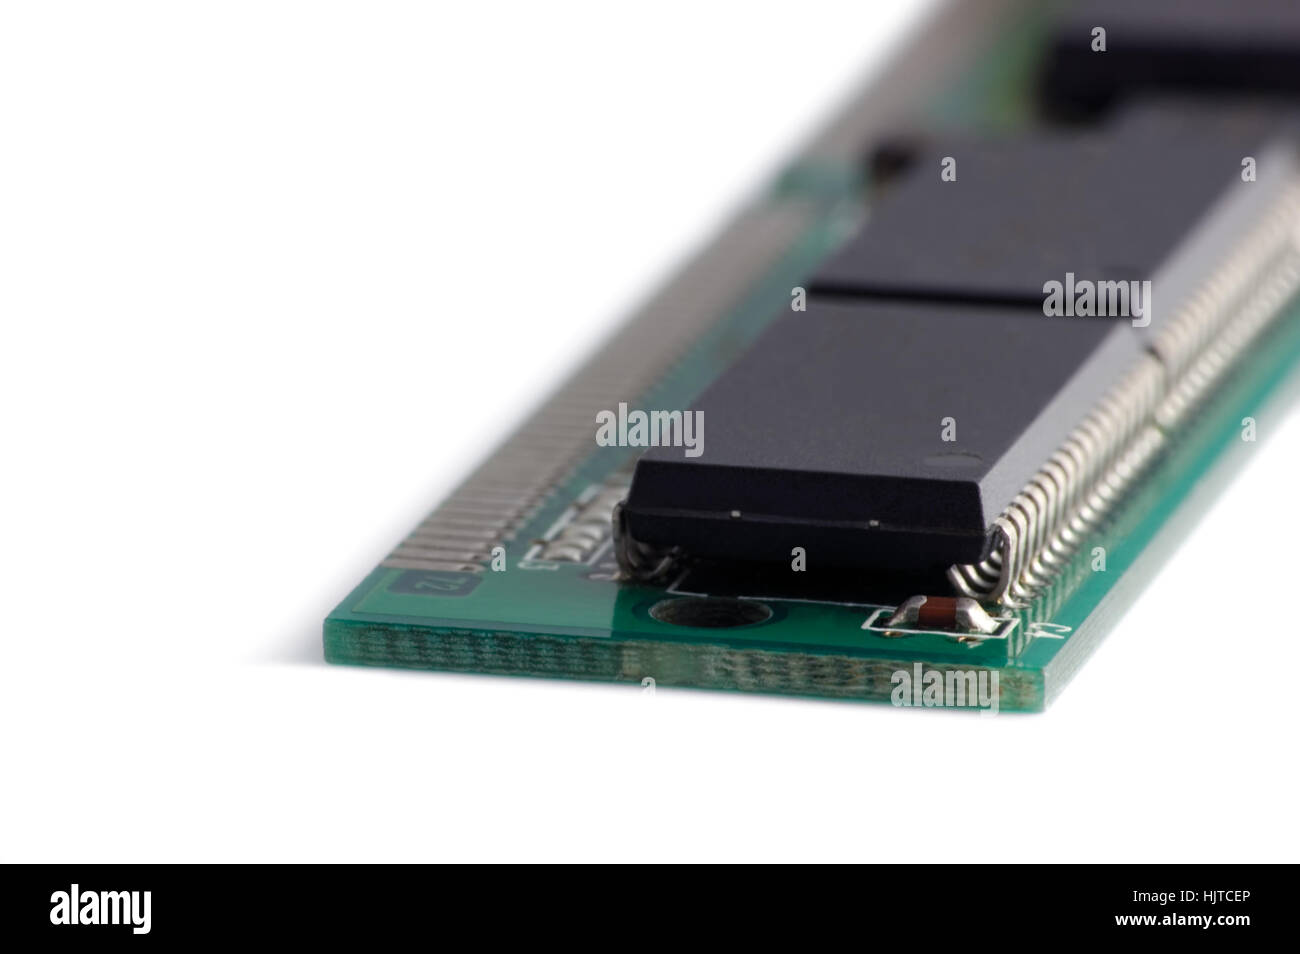 Memory Card Chip Macro Isolated Closeup - Stock Image